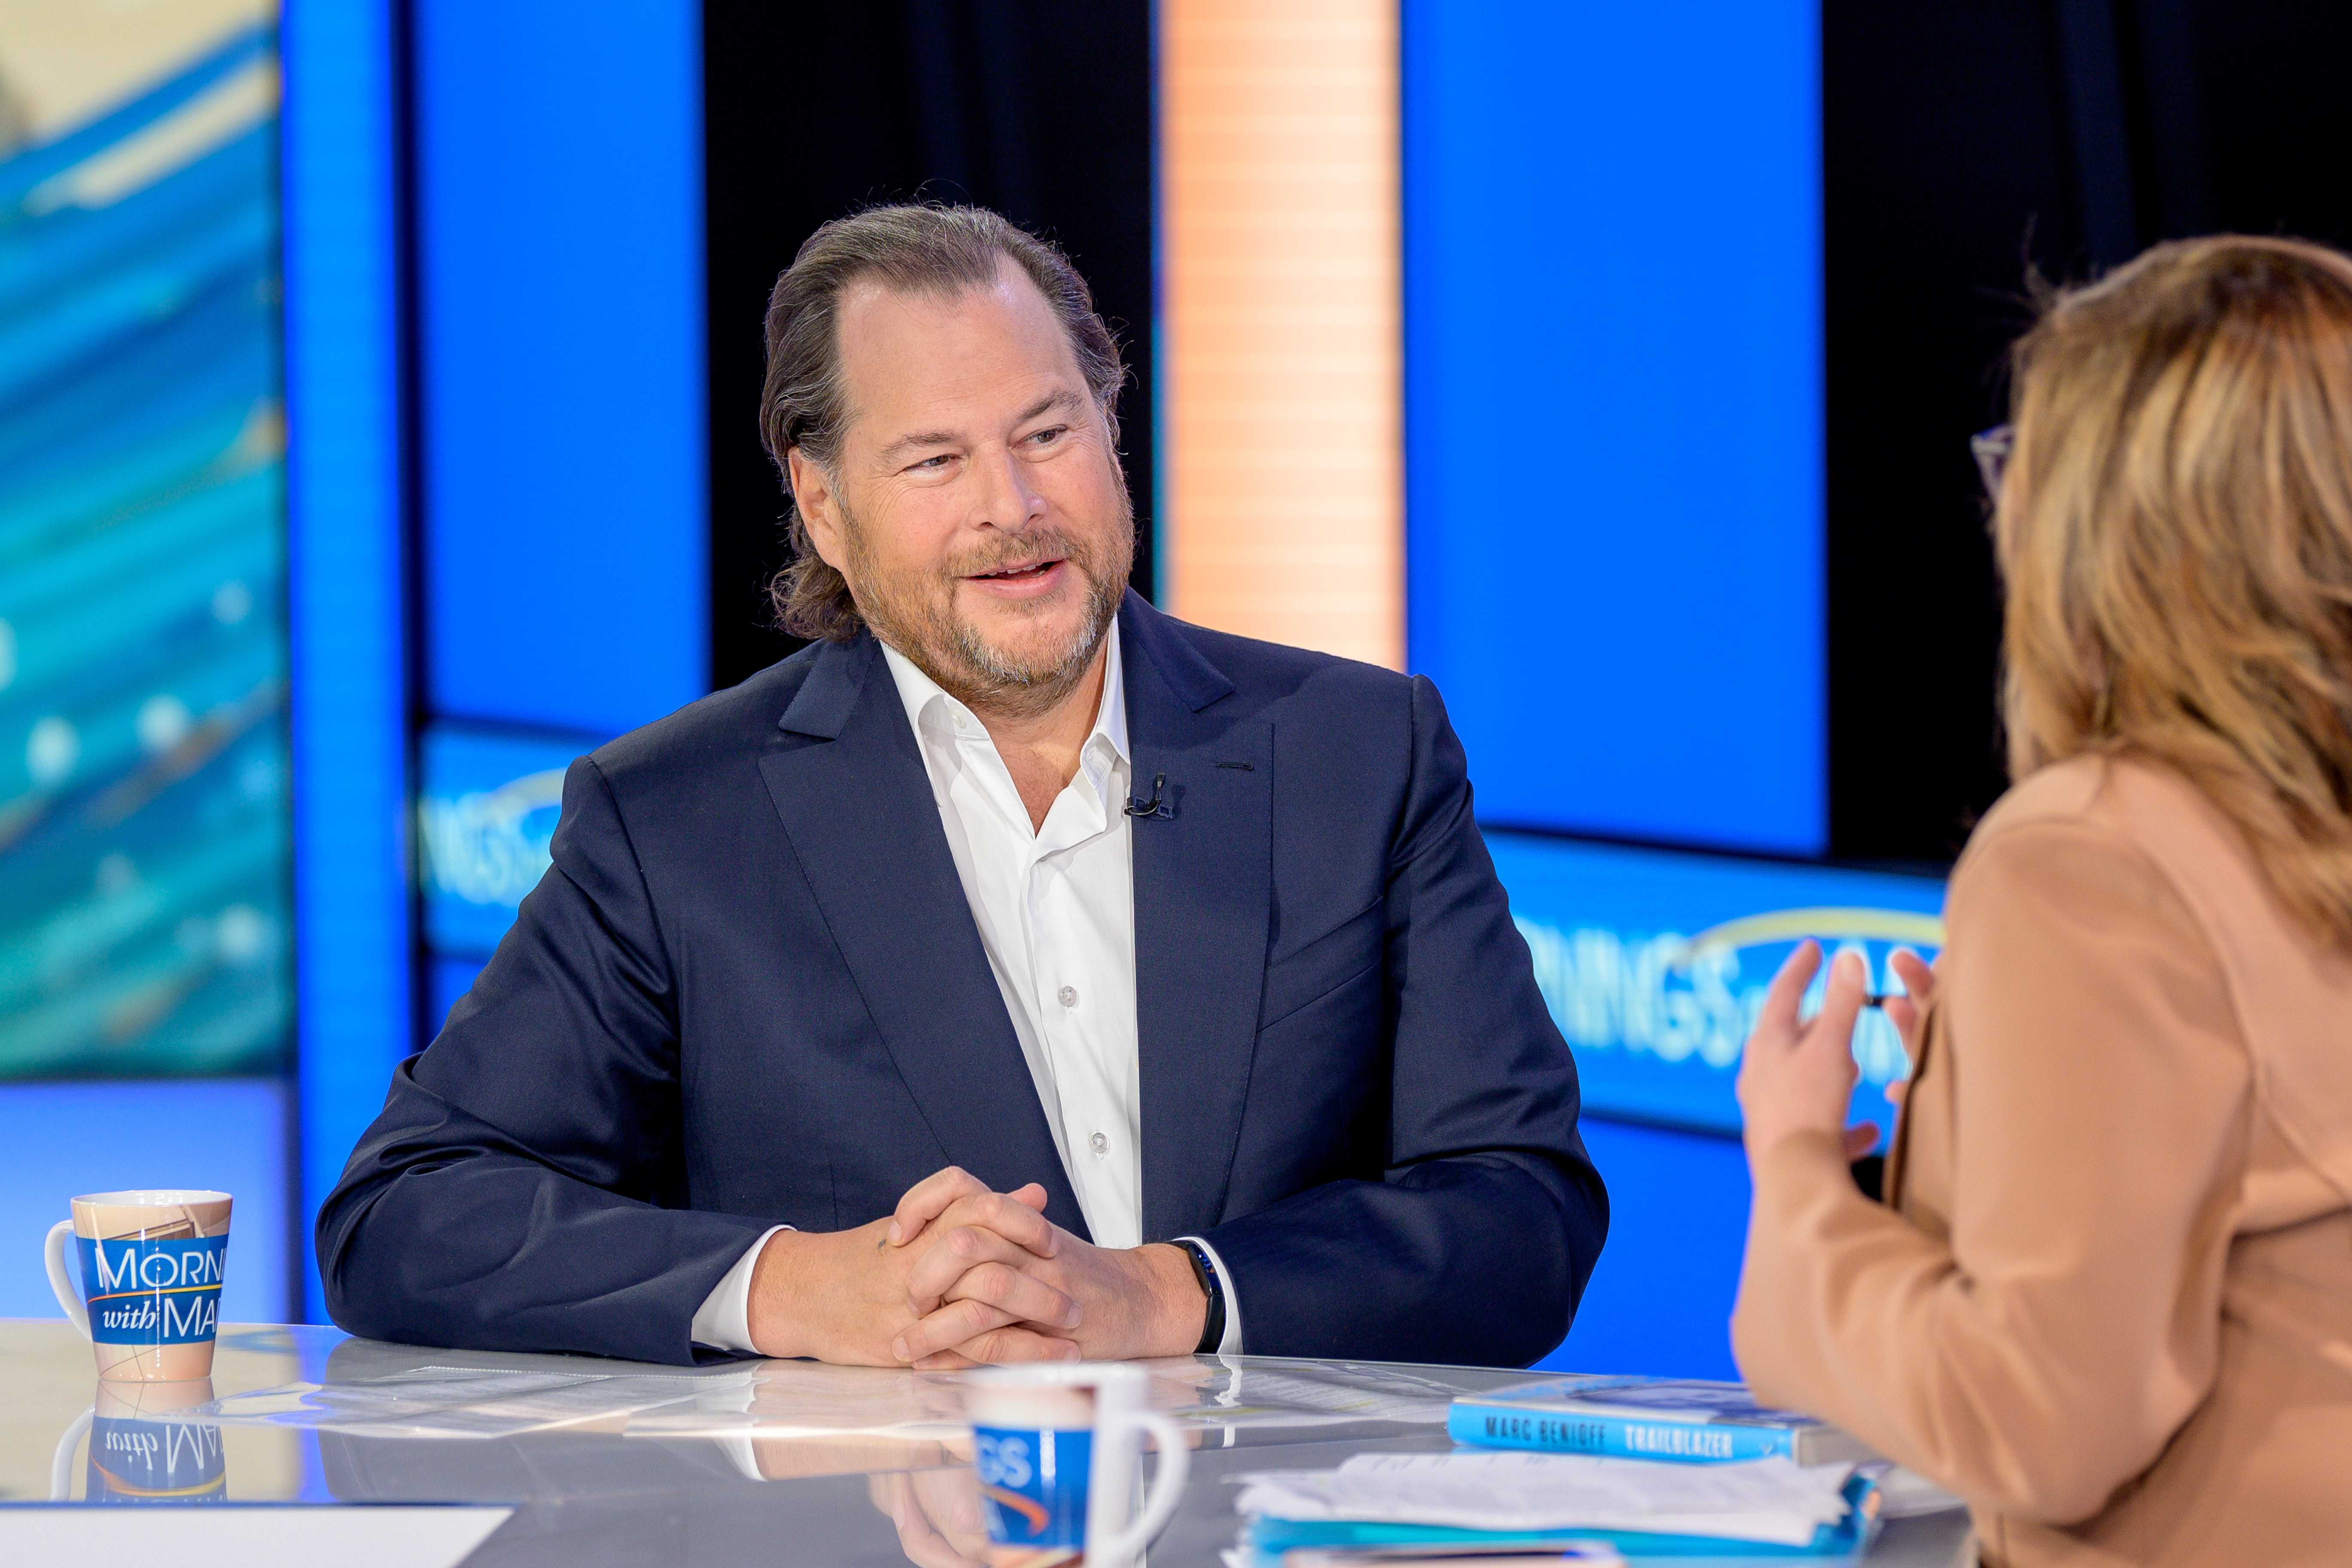 Salesforce Founder & Co-CEO Marc Benioff making a television appearance this month